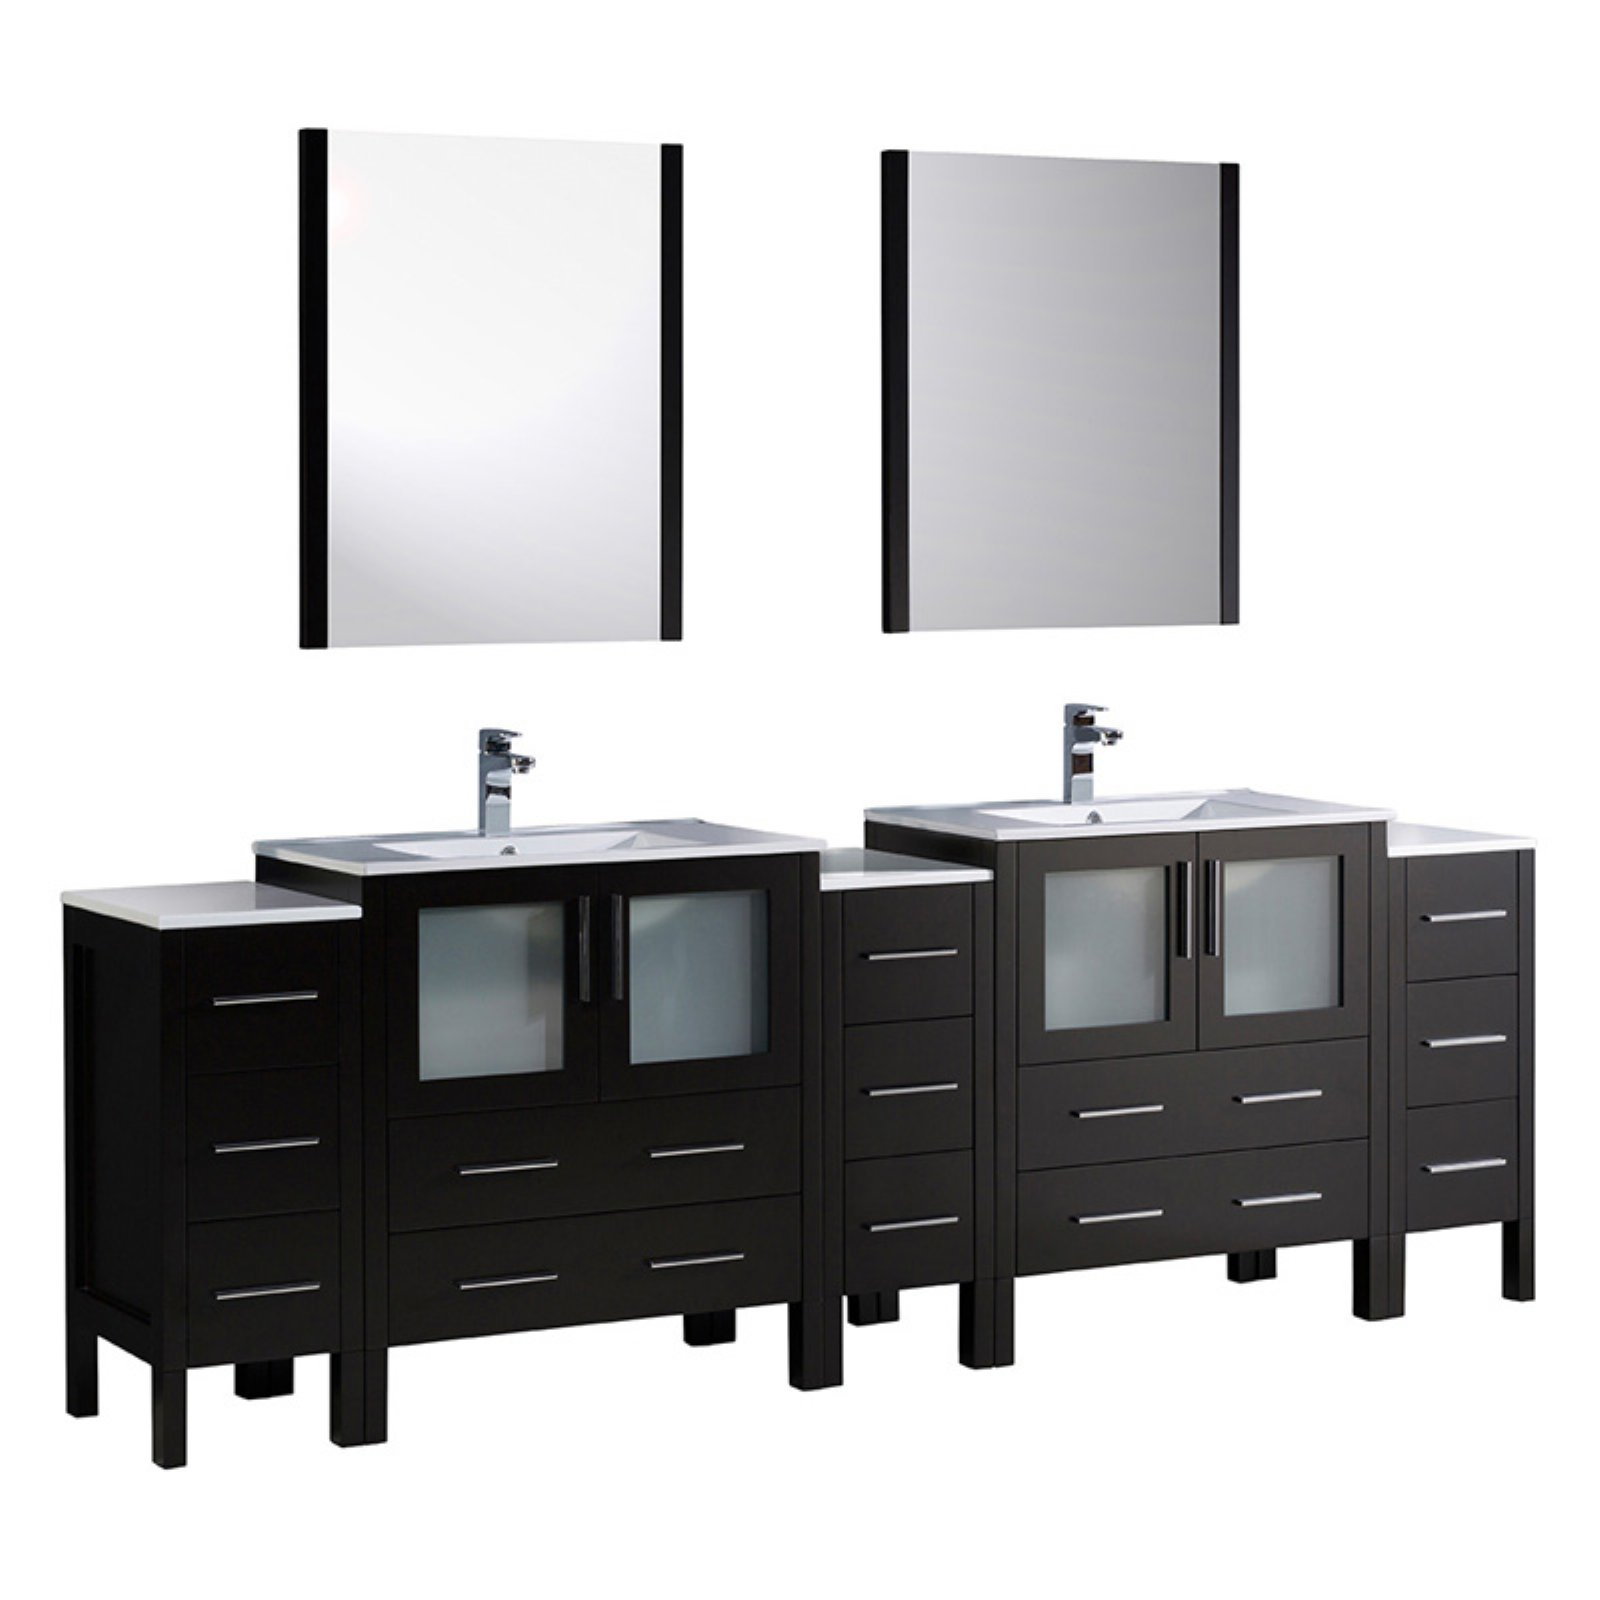 Fresca Torino 96 in. Double Bathroom Vanity with Integrated Sinks ...